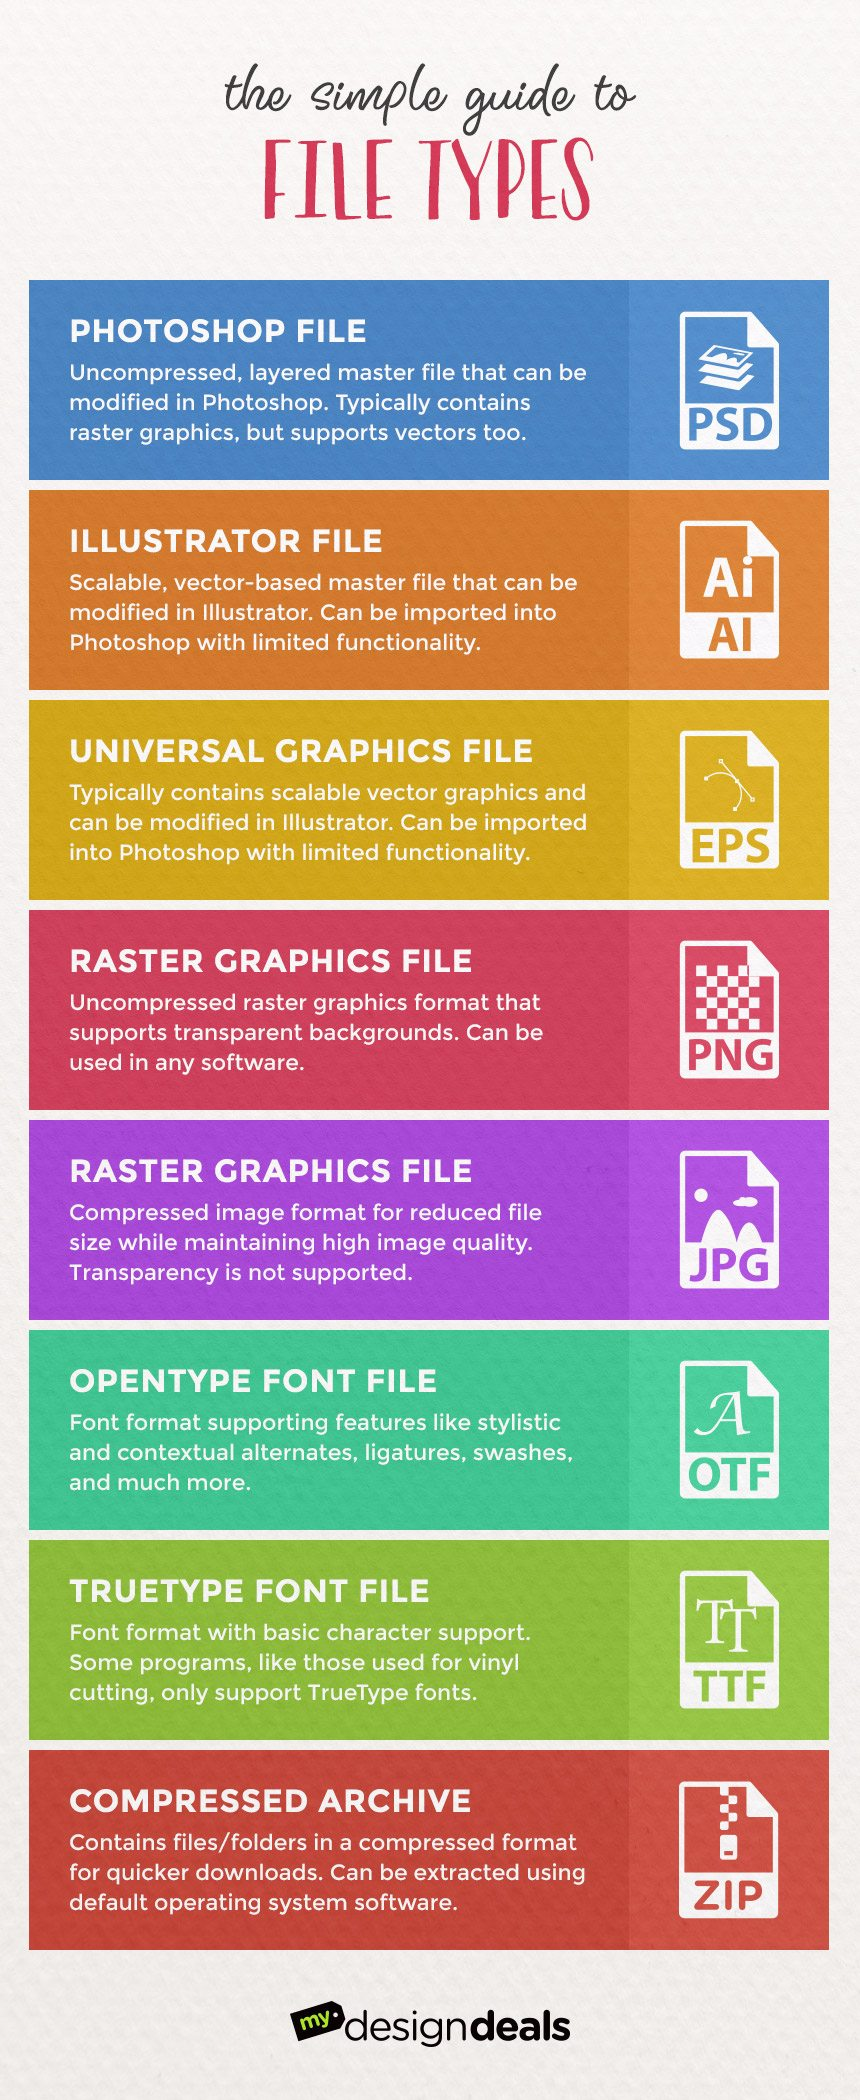 Useful guide to file types for developers and designers